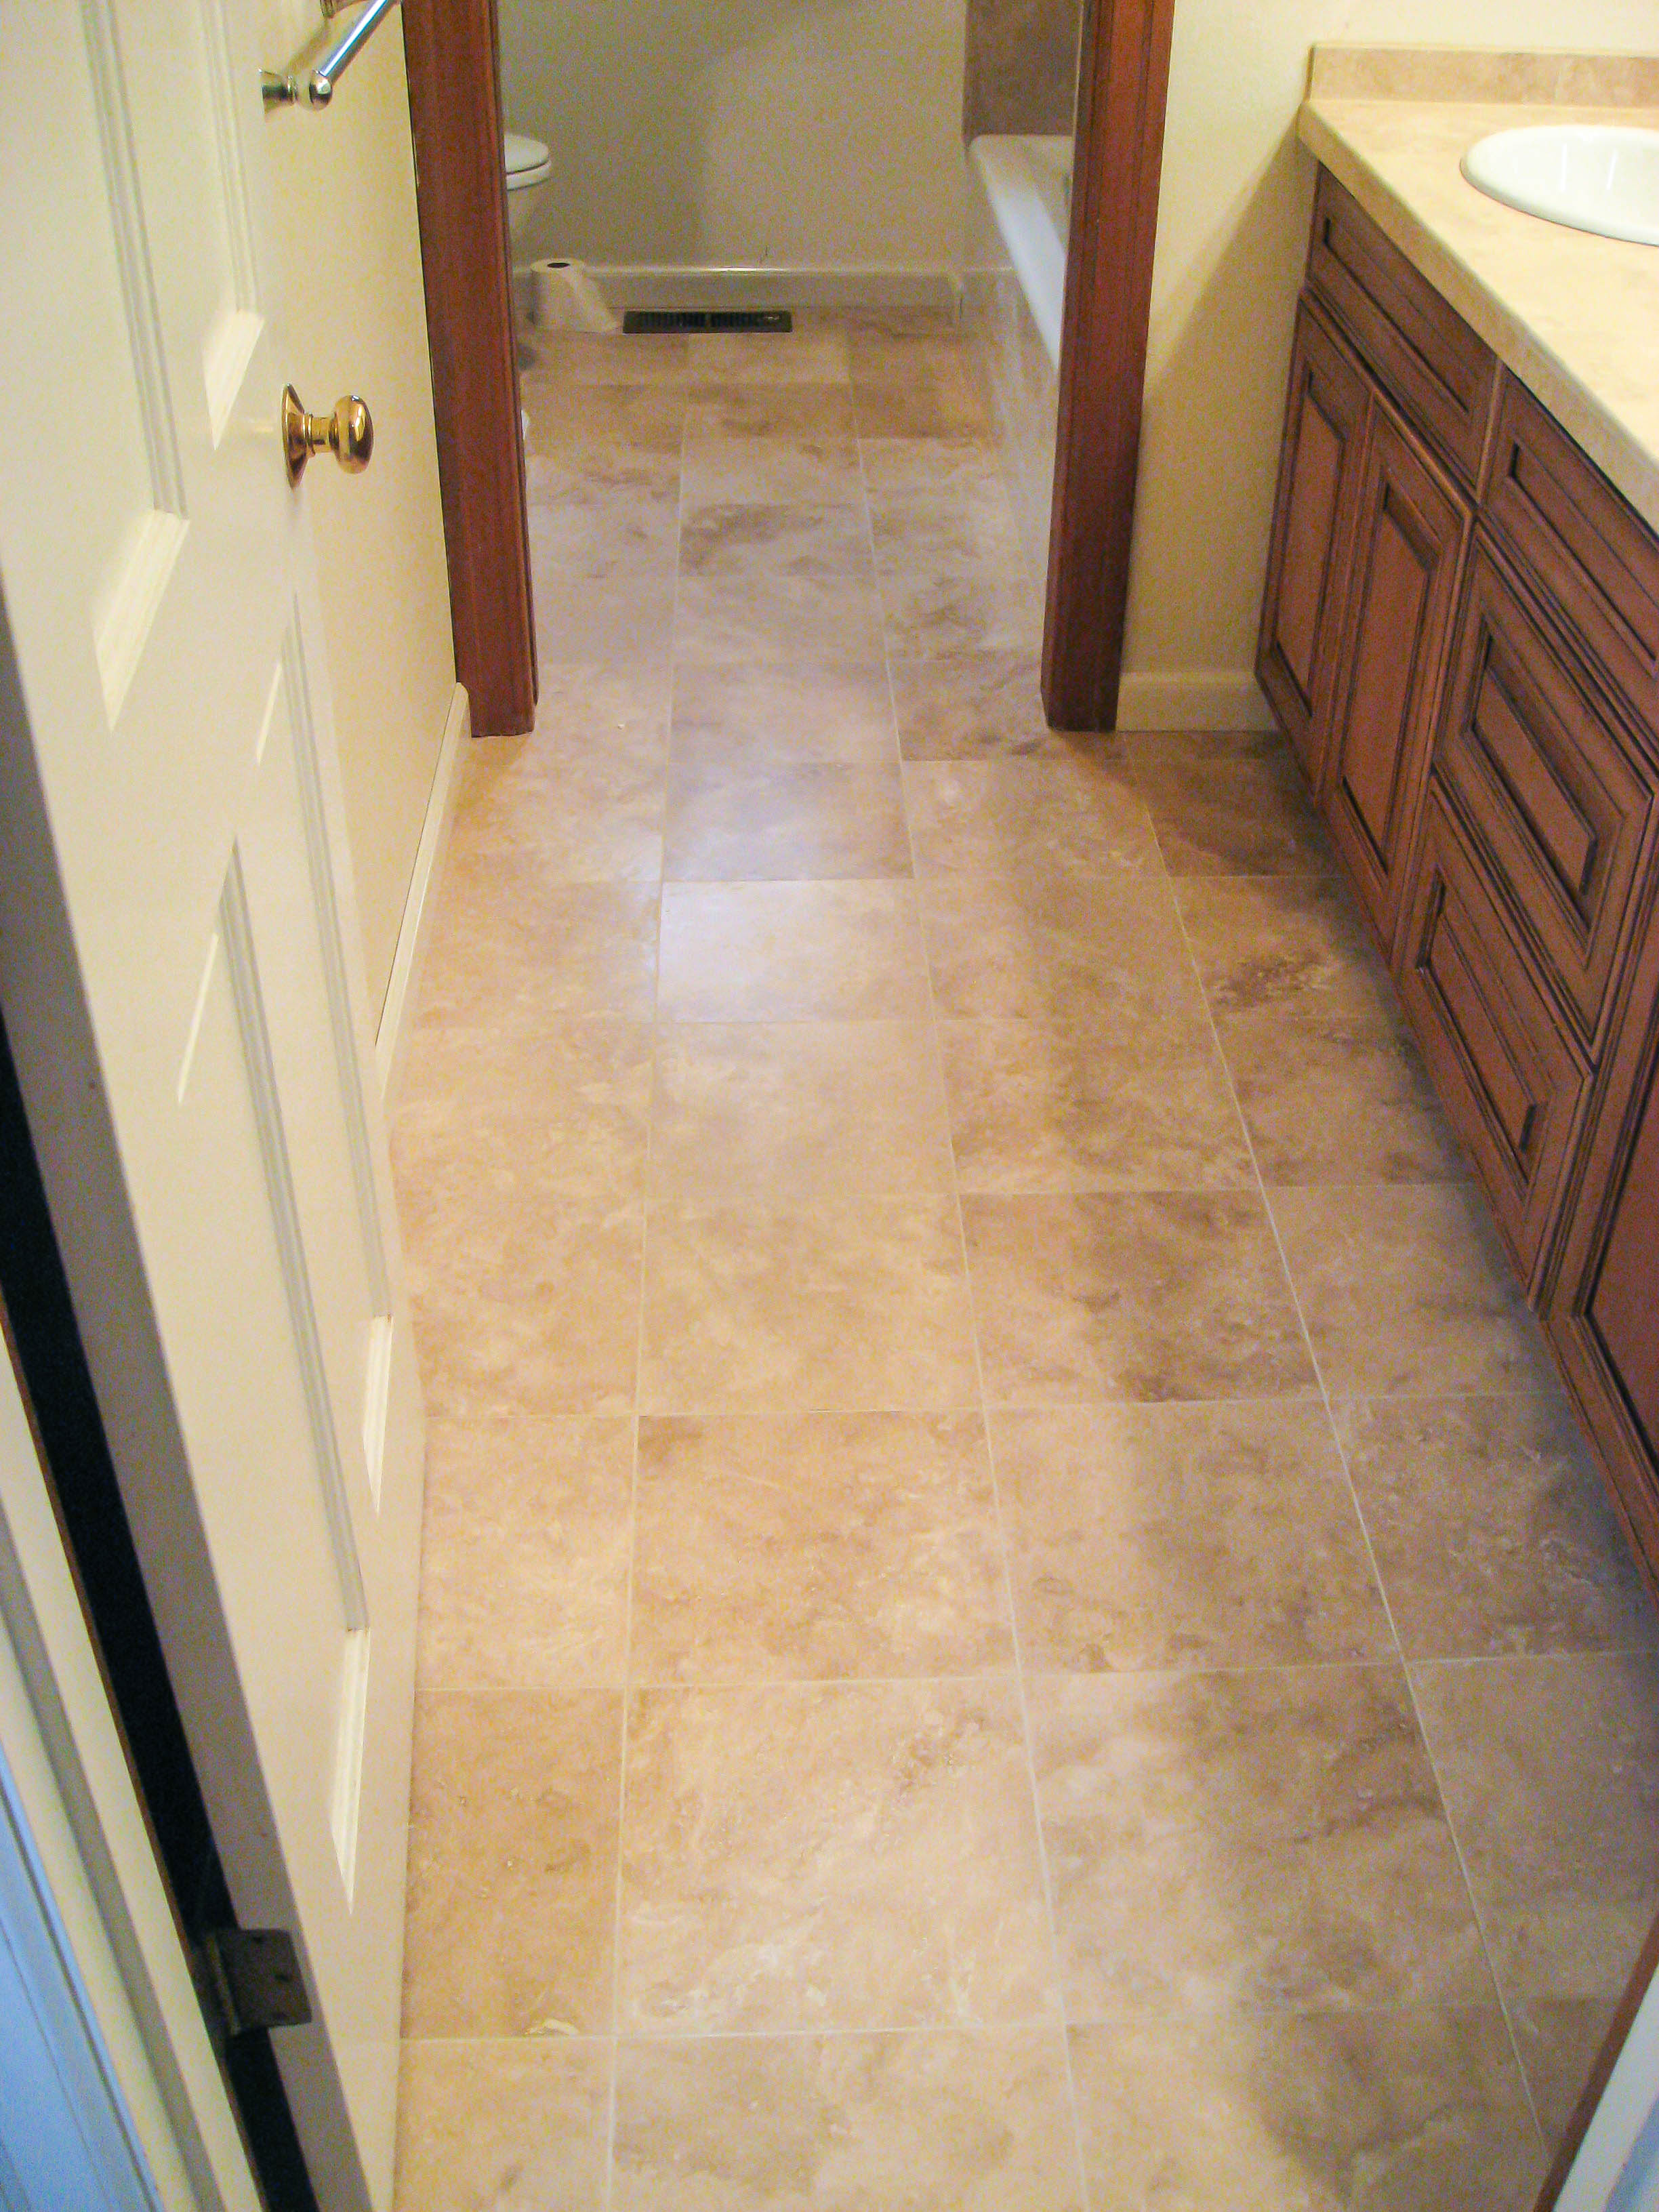 Bathroom Floors - Seattle Tile Contractor